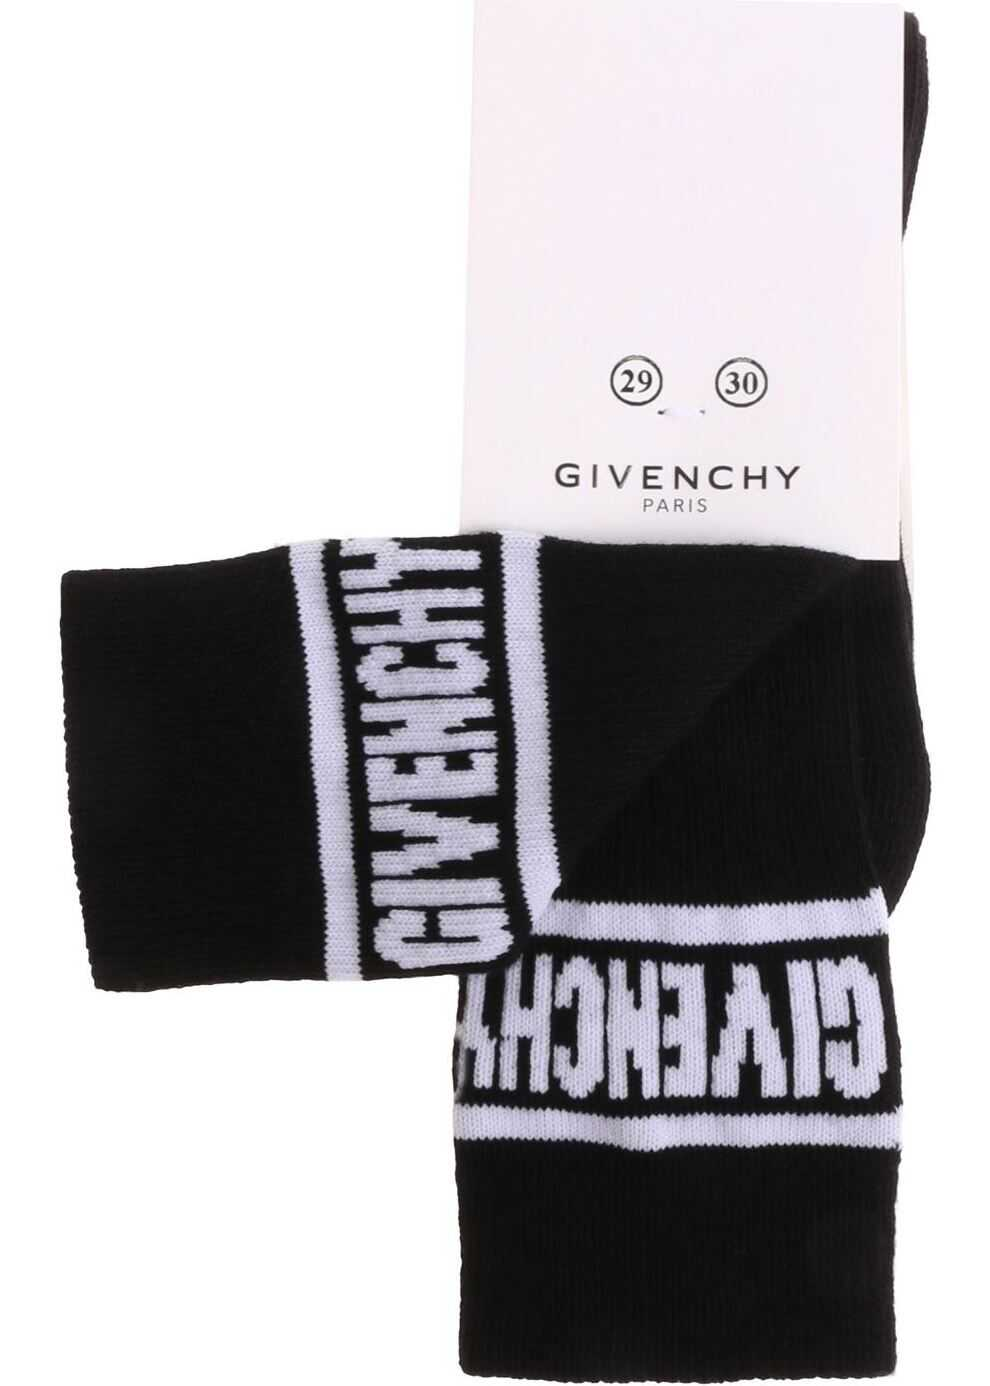 Givenchy Black Socks With White Logo Embroidery Black